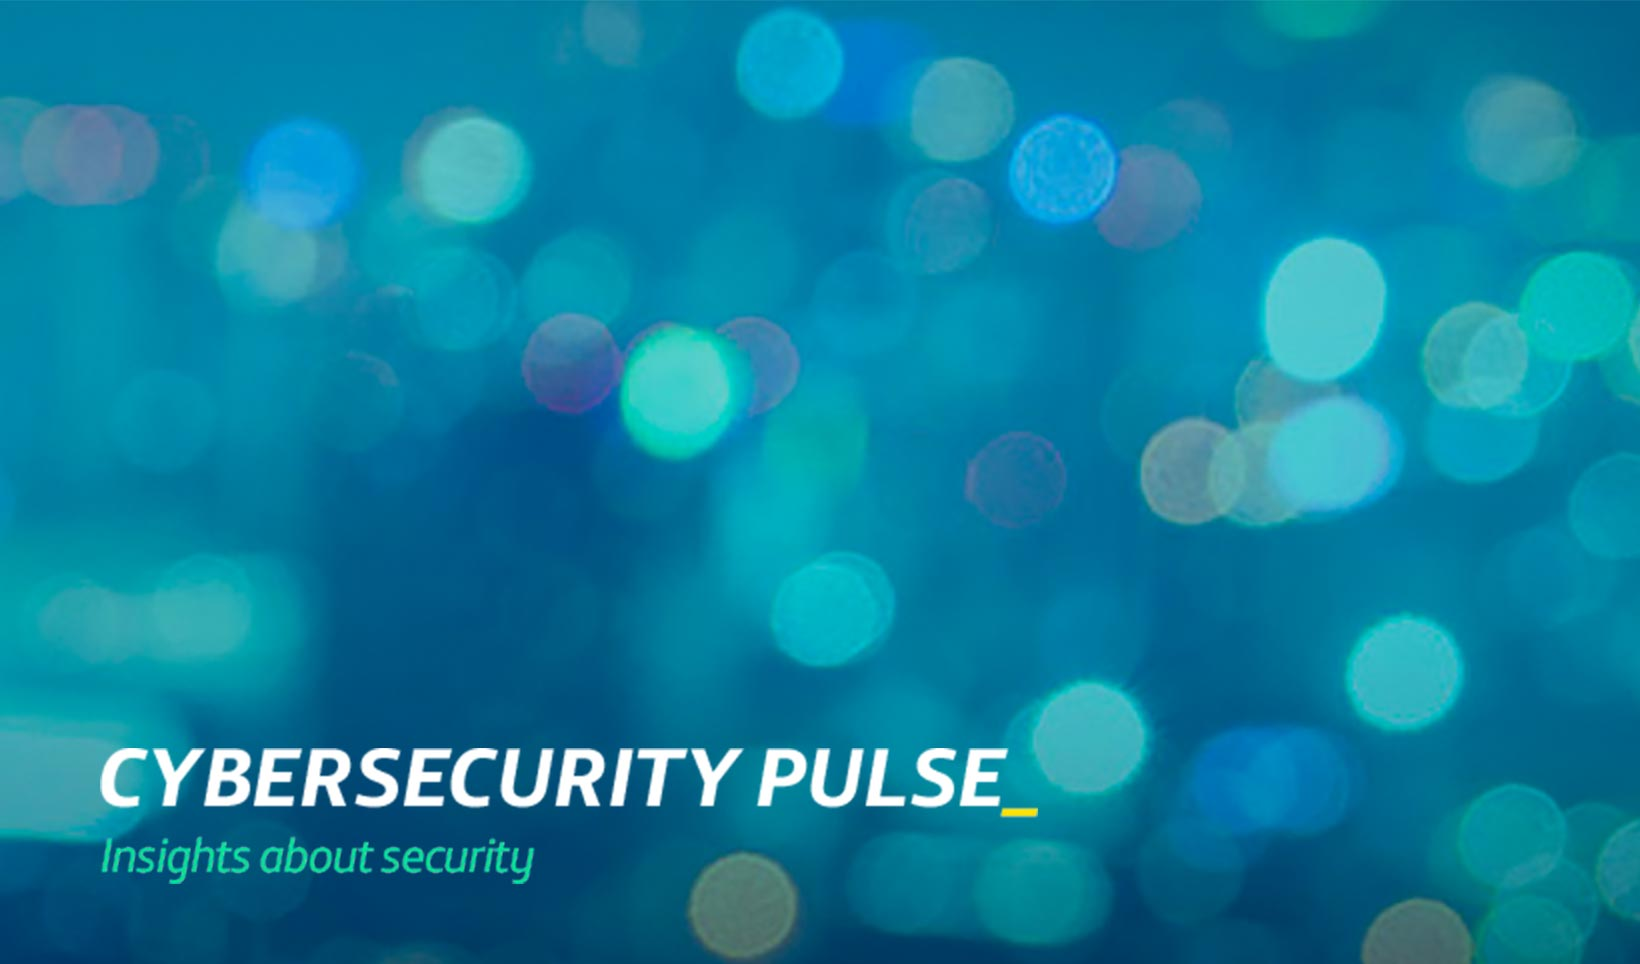 CyberSecurityPulse: Our channel about news and reflections on cyber security.